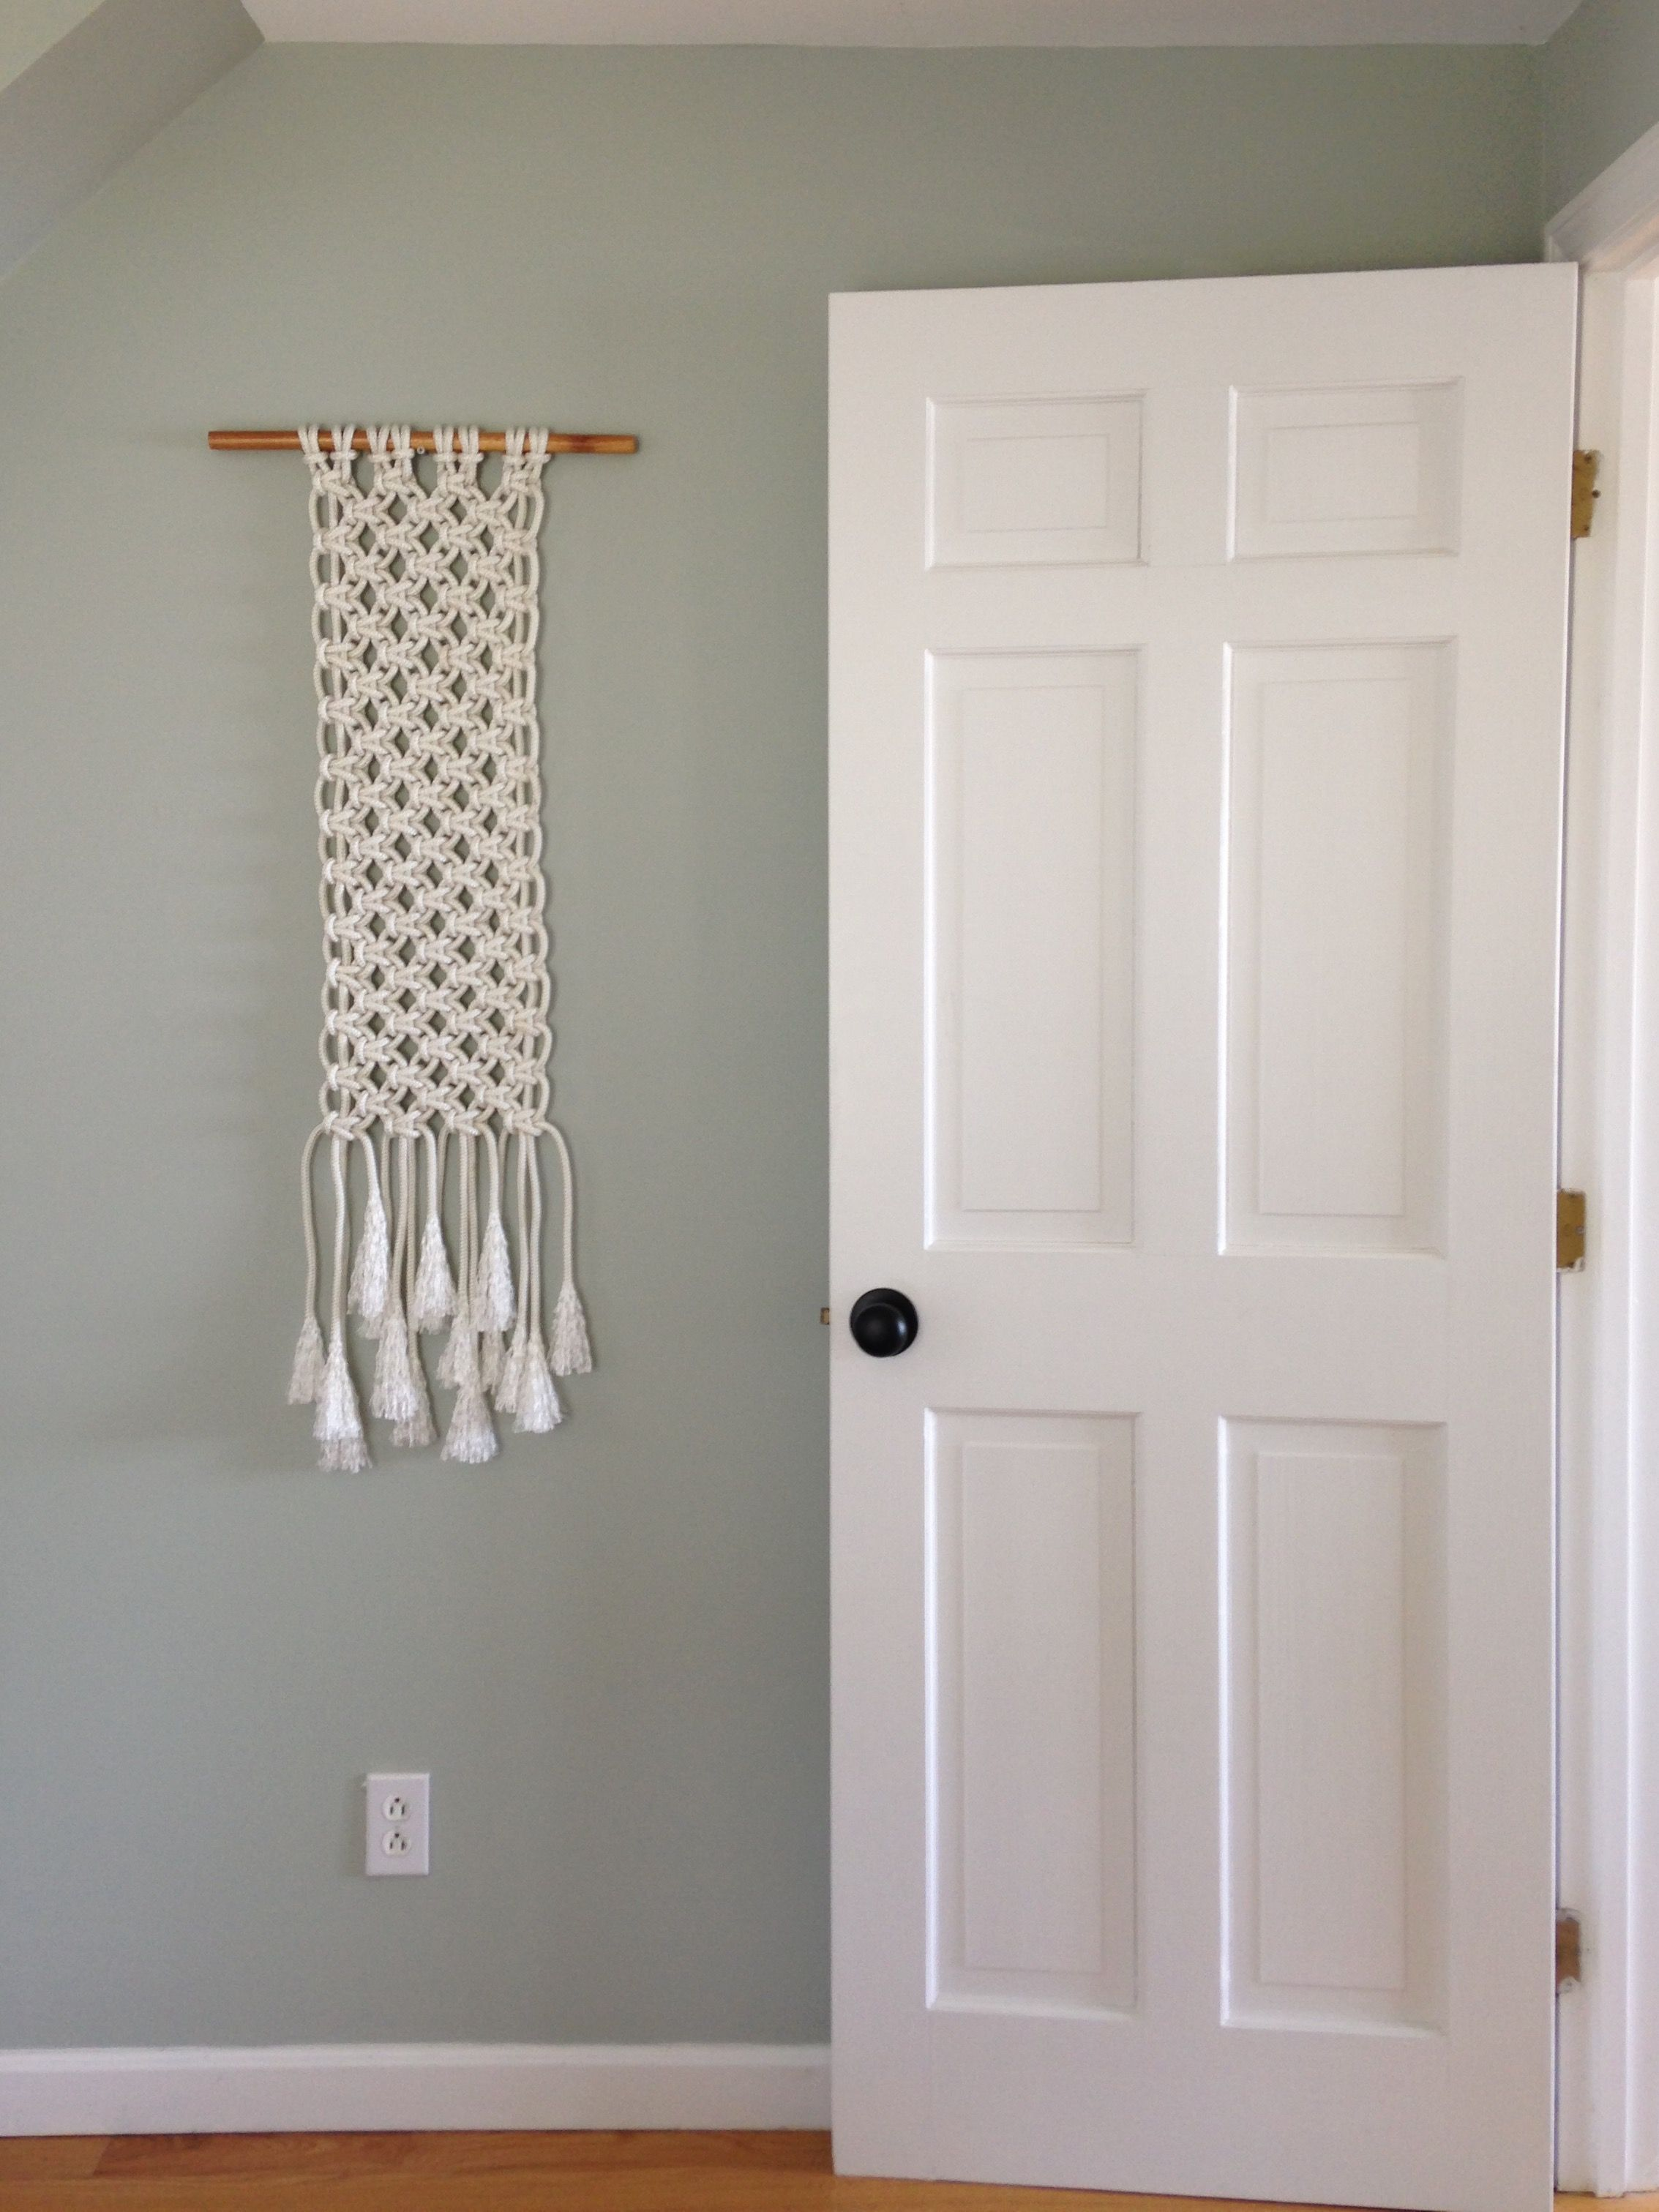 Benjamin moore gray wisp white macrame wall hanging - Master bedroom and bathroom paint colors ...